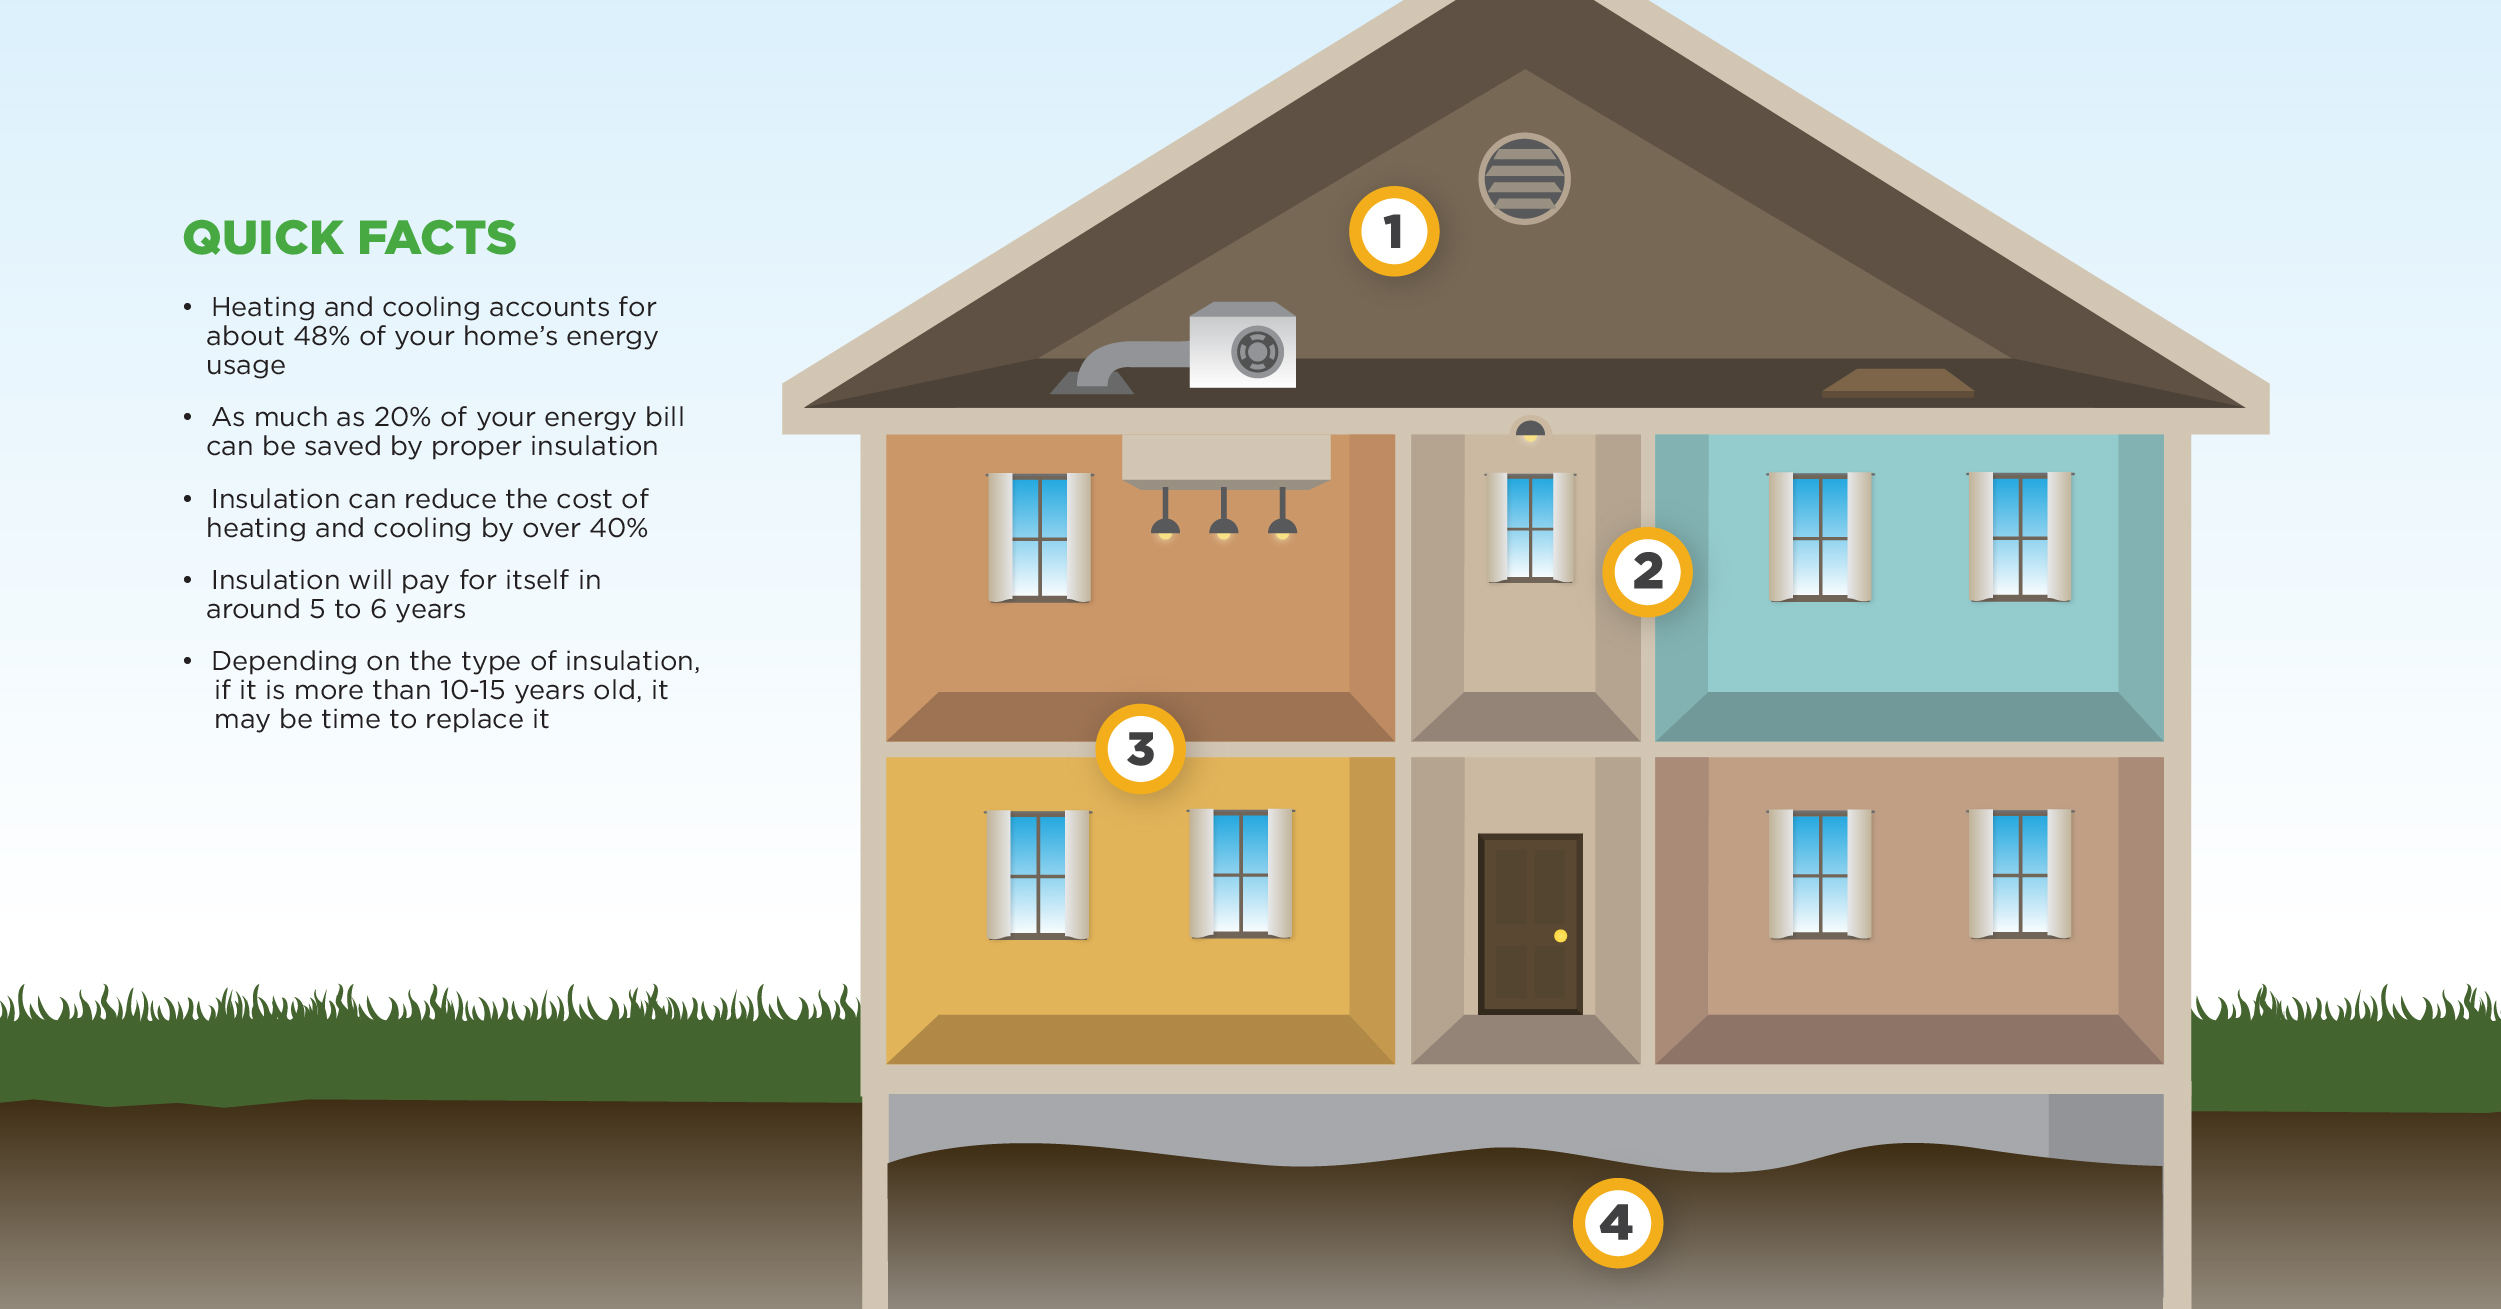 Is Your Home Properly Insulated